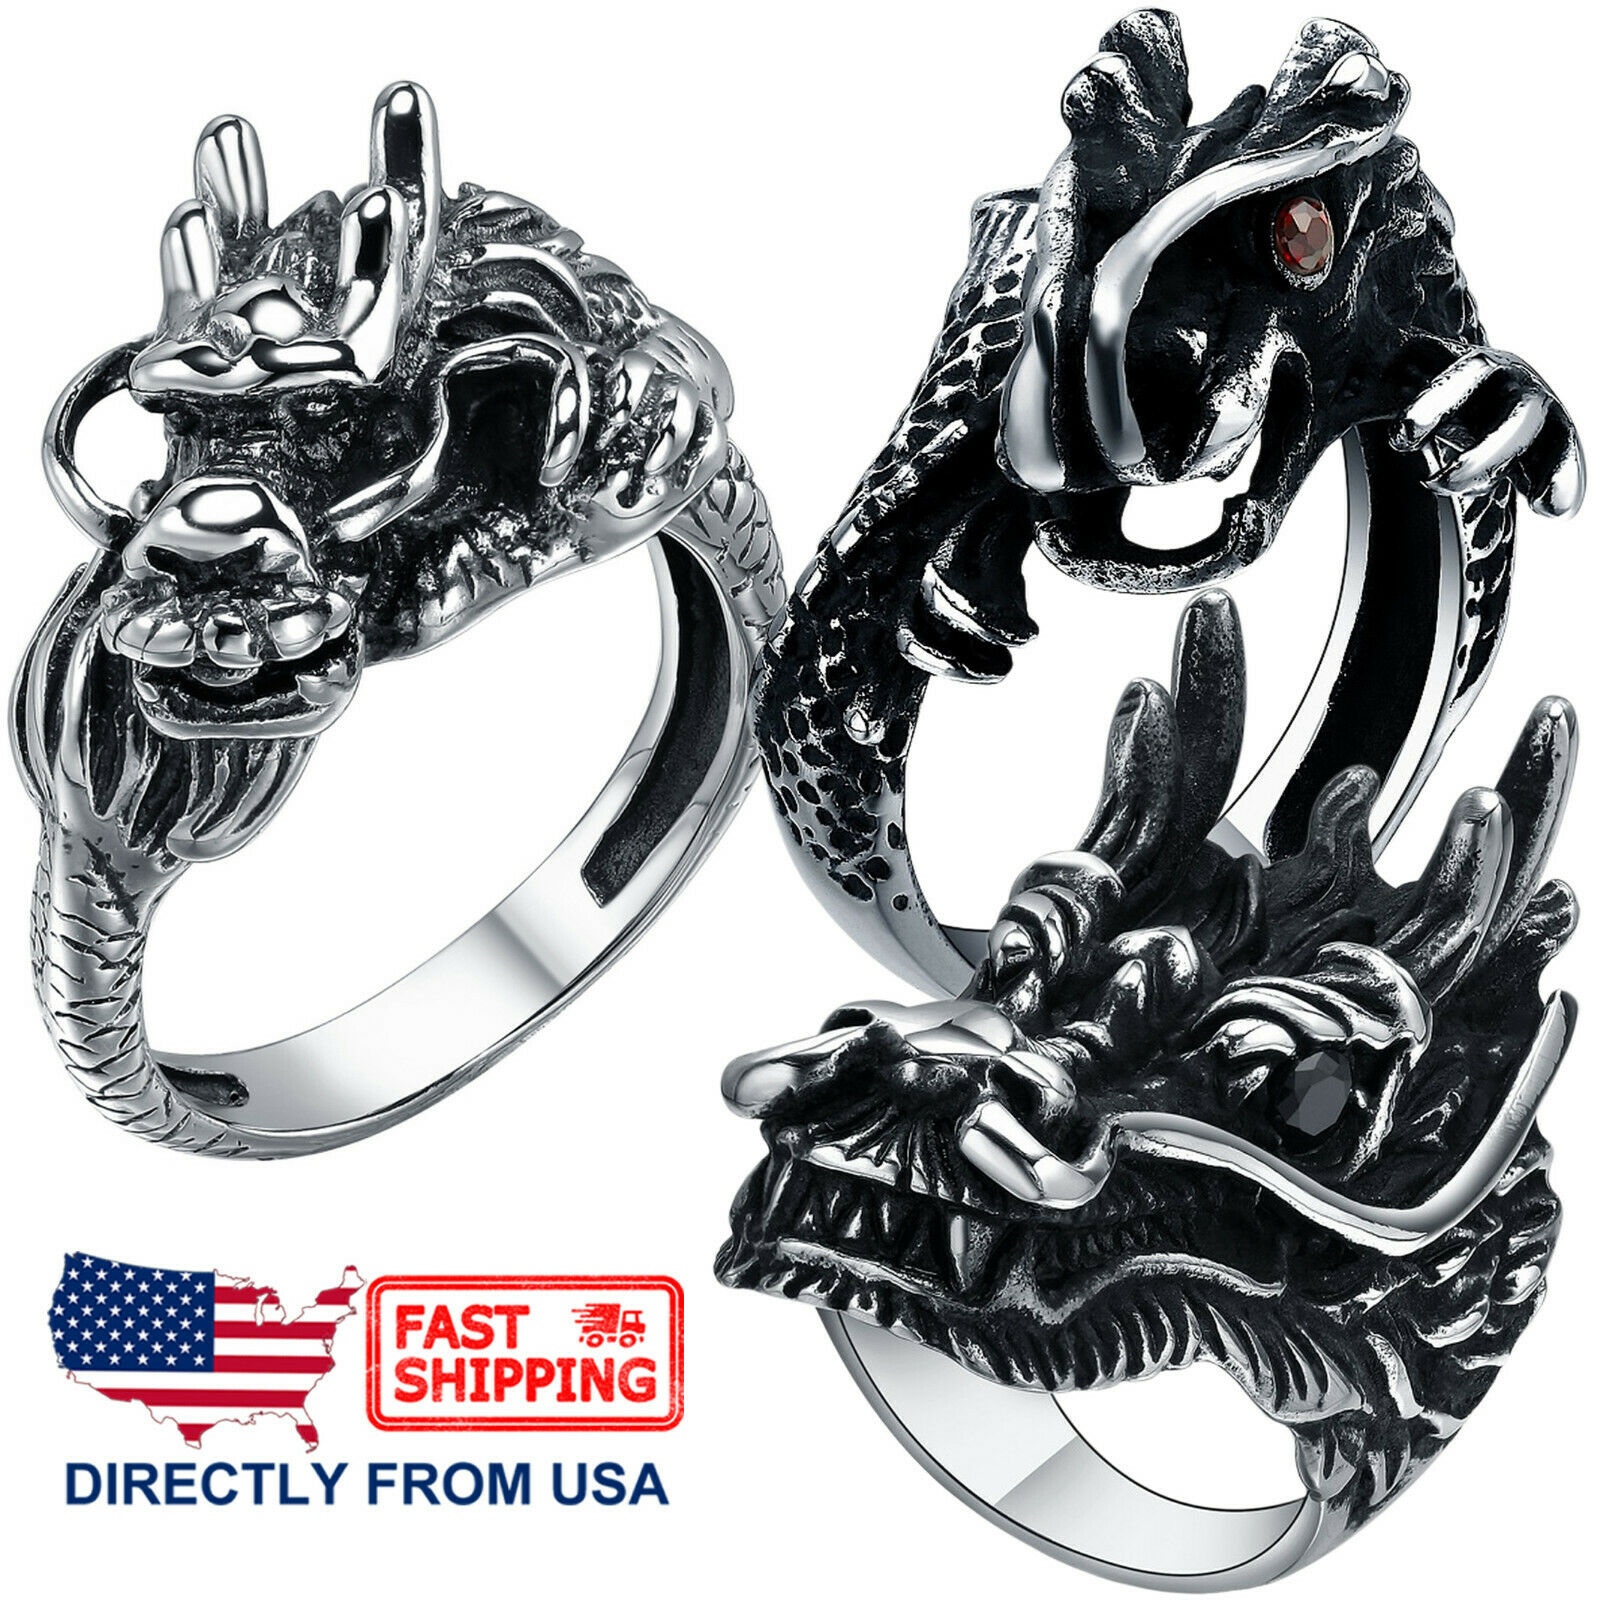 Men's Stainless Steel Gothic Halloween Biker Dragon Ring (Size 7 15, US Seller) Jewelry & Watches